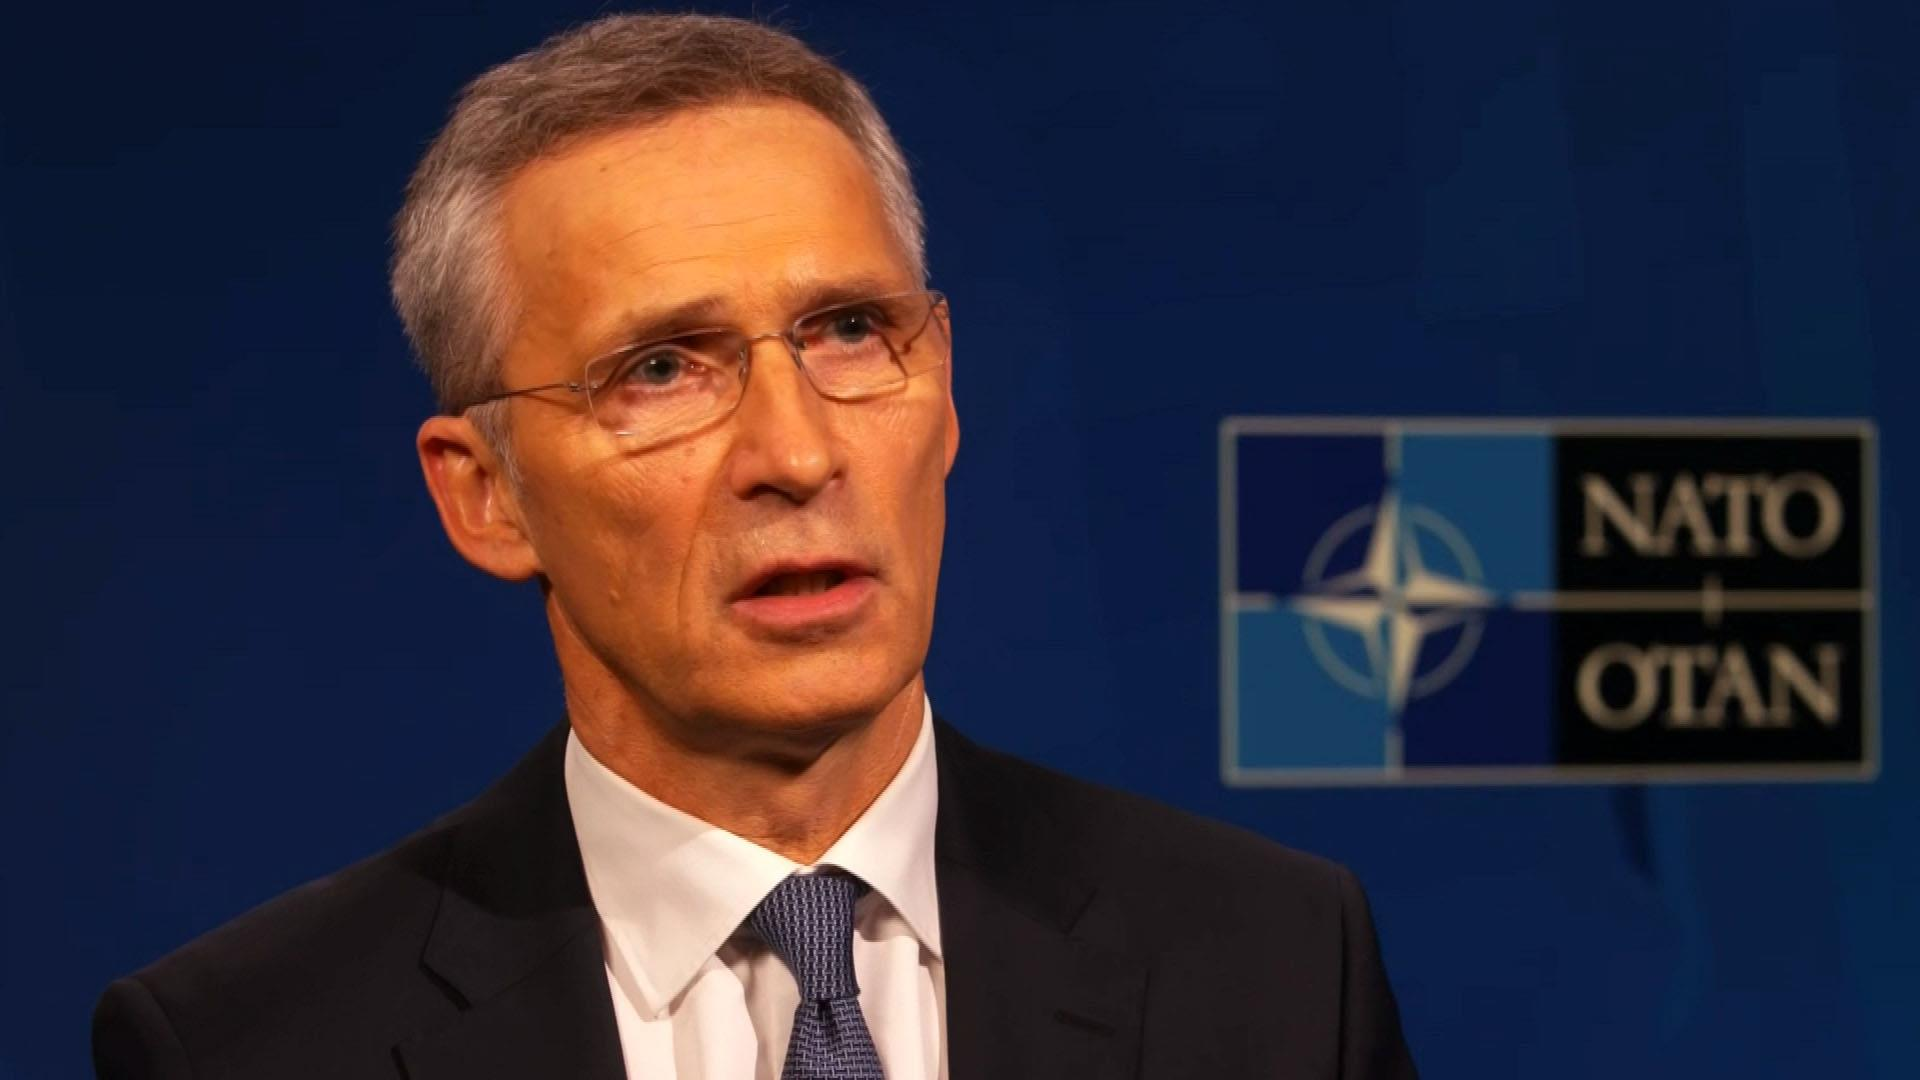 With no INF treaty, NATO is planning for more Russian missiles in Europe